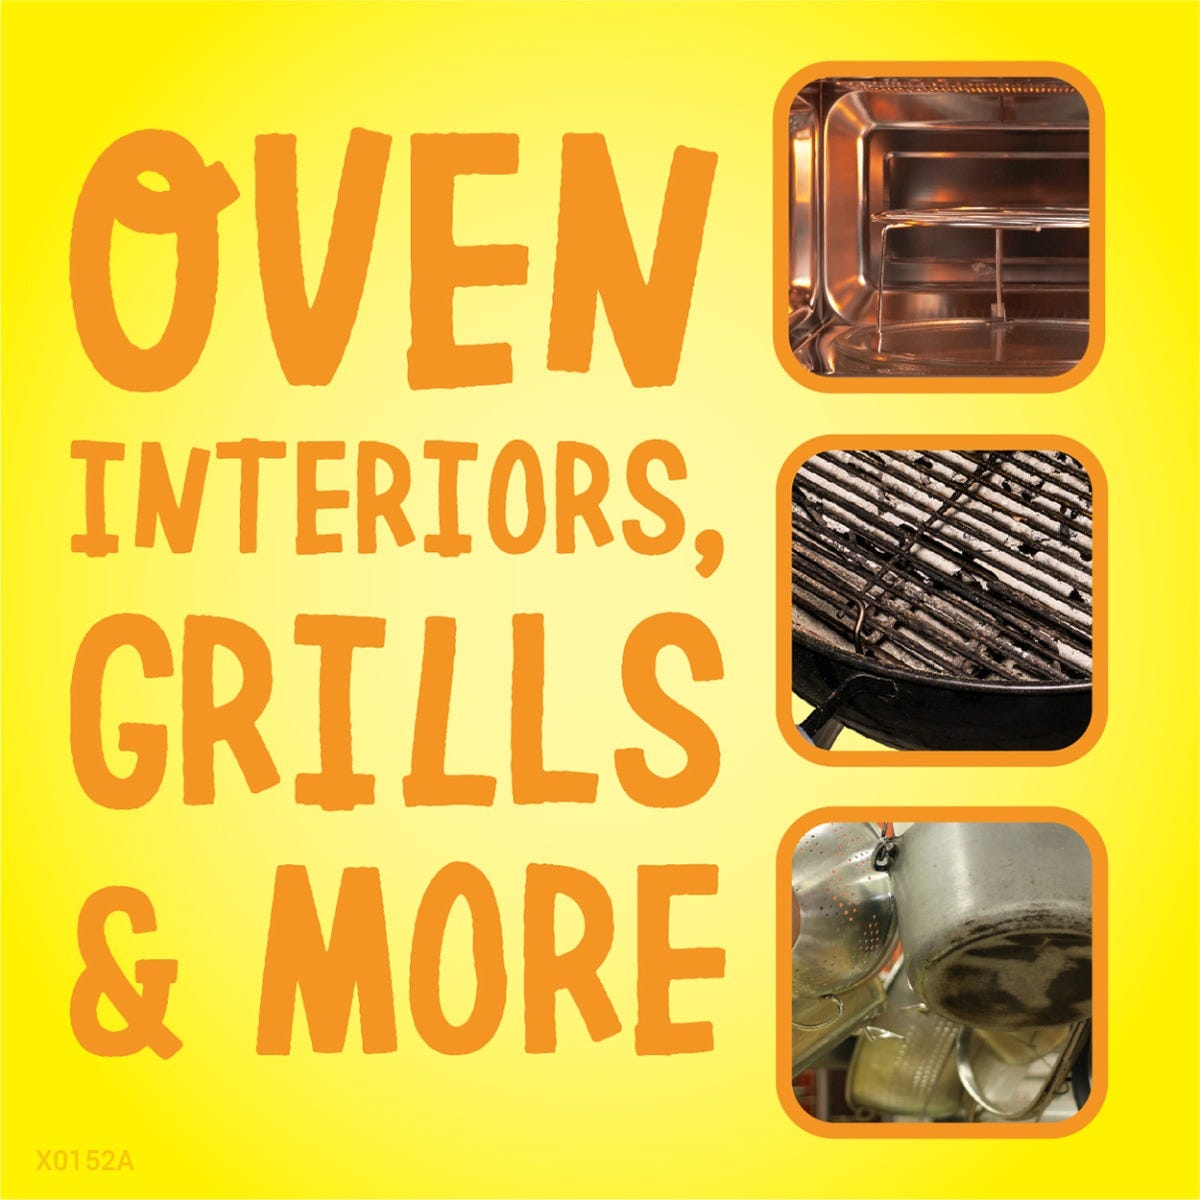 Use on ovens, grills & more